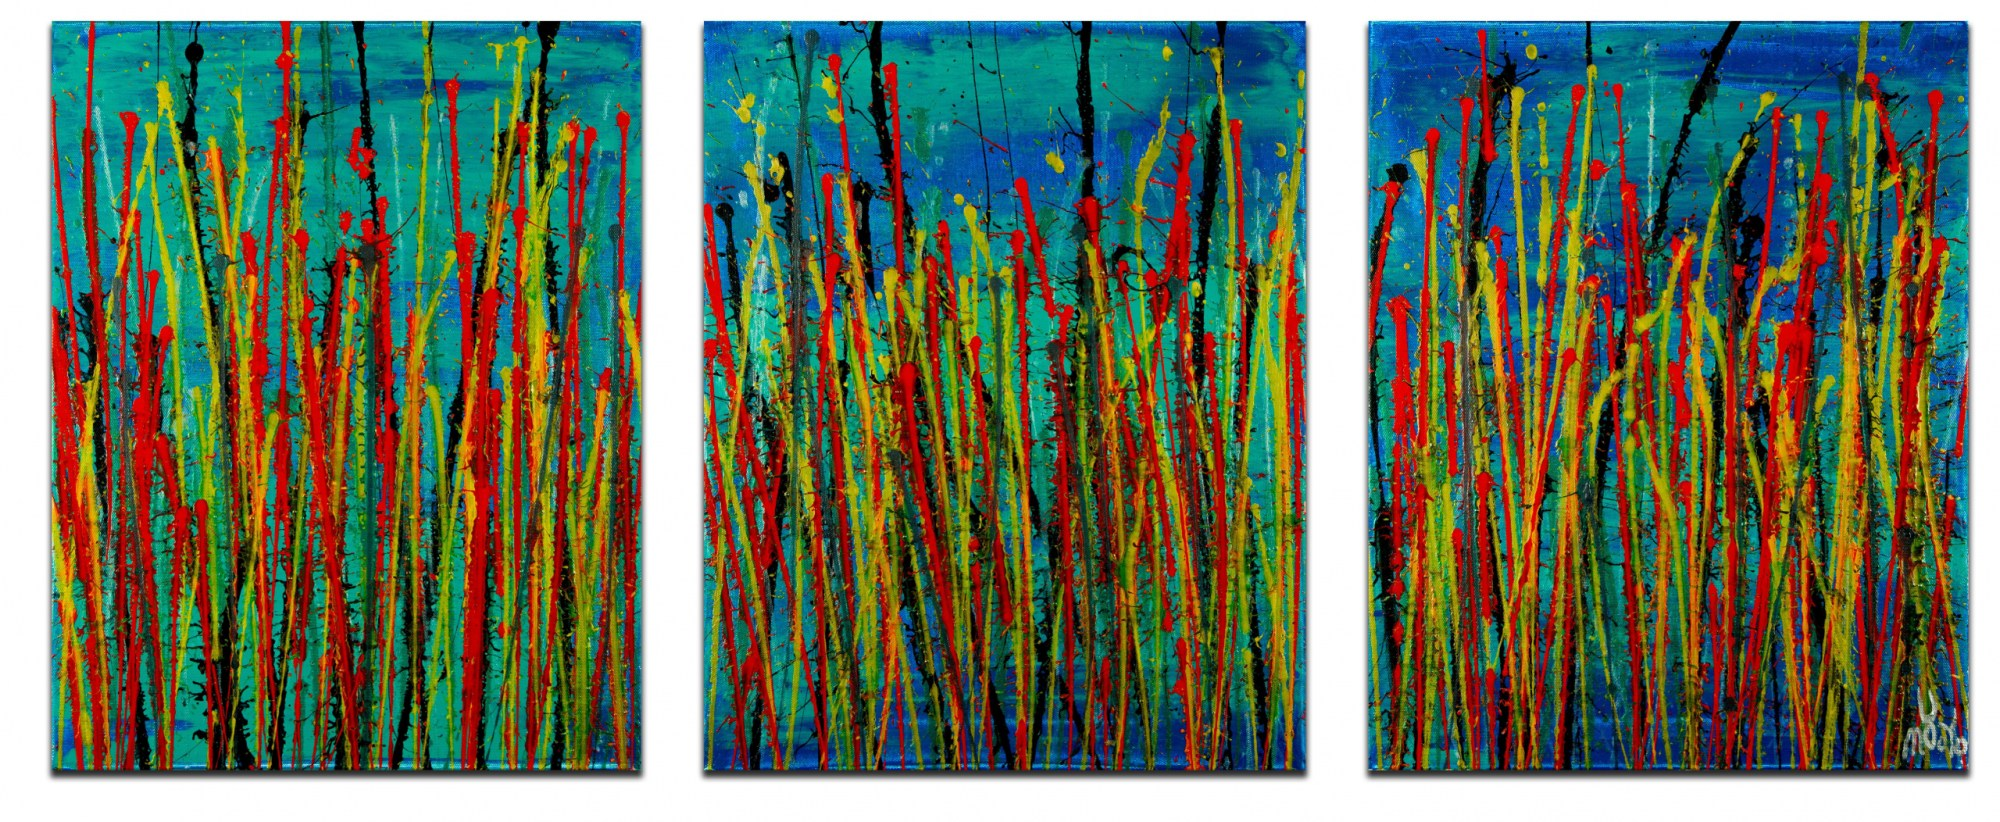 Natures Imagery (Scattering Colors) 1 (2021) / Triptych